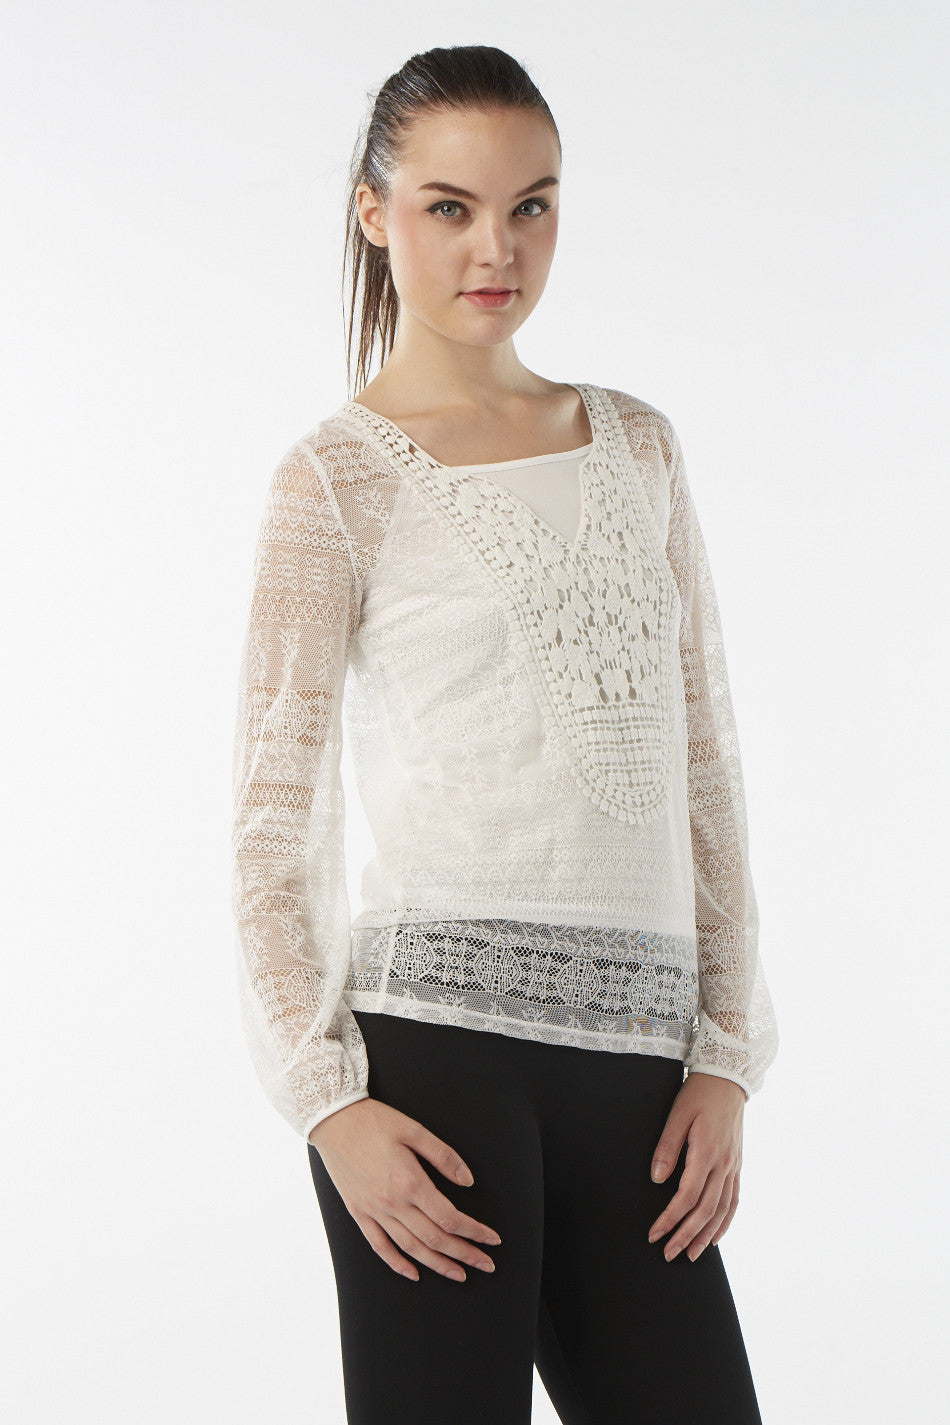 Layered Floral Crochet Top - Izabel London